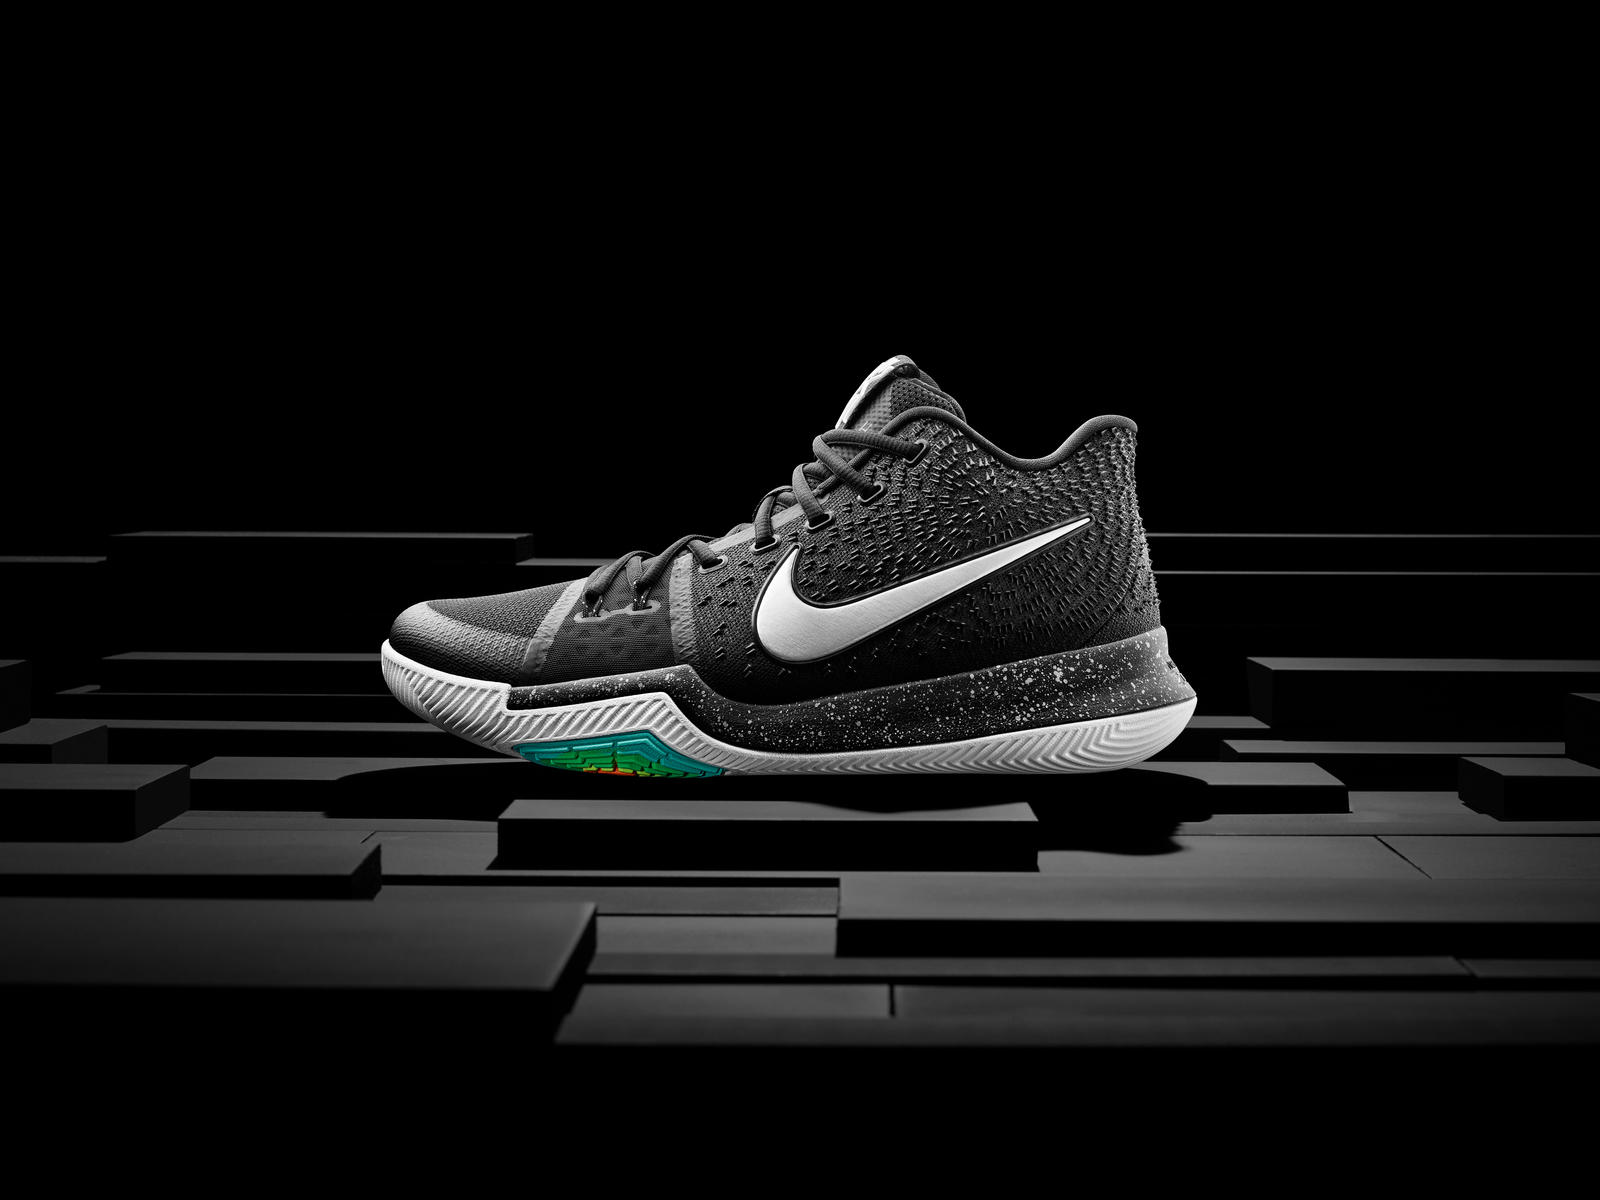 kyrie 3 built for kyrie irving�s prolific game nike news